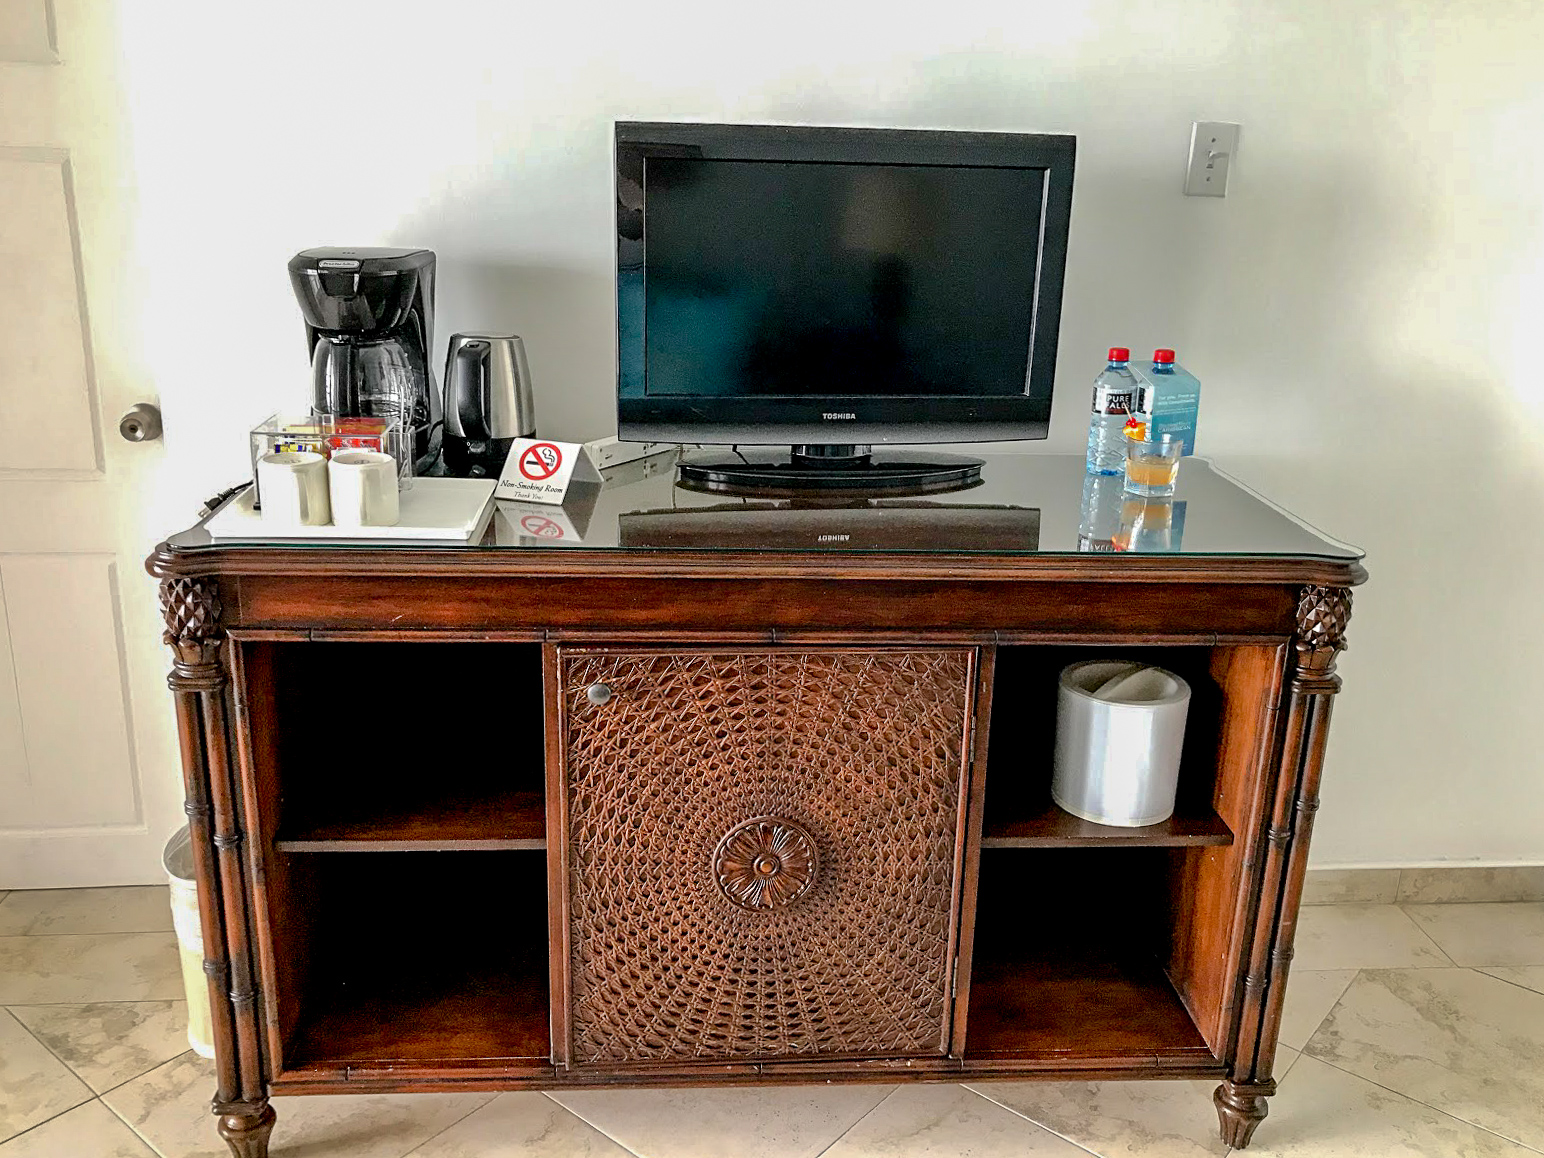 A big side table with intricatly carved wooden door on the front